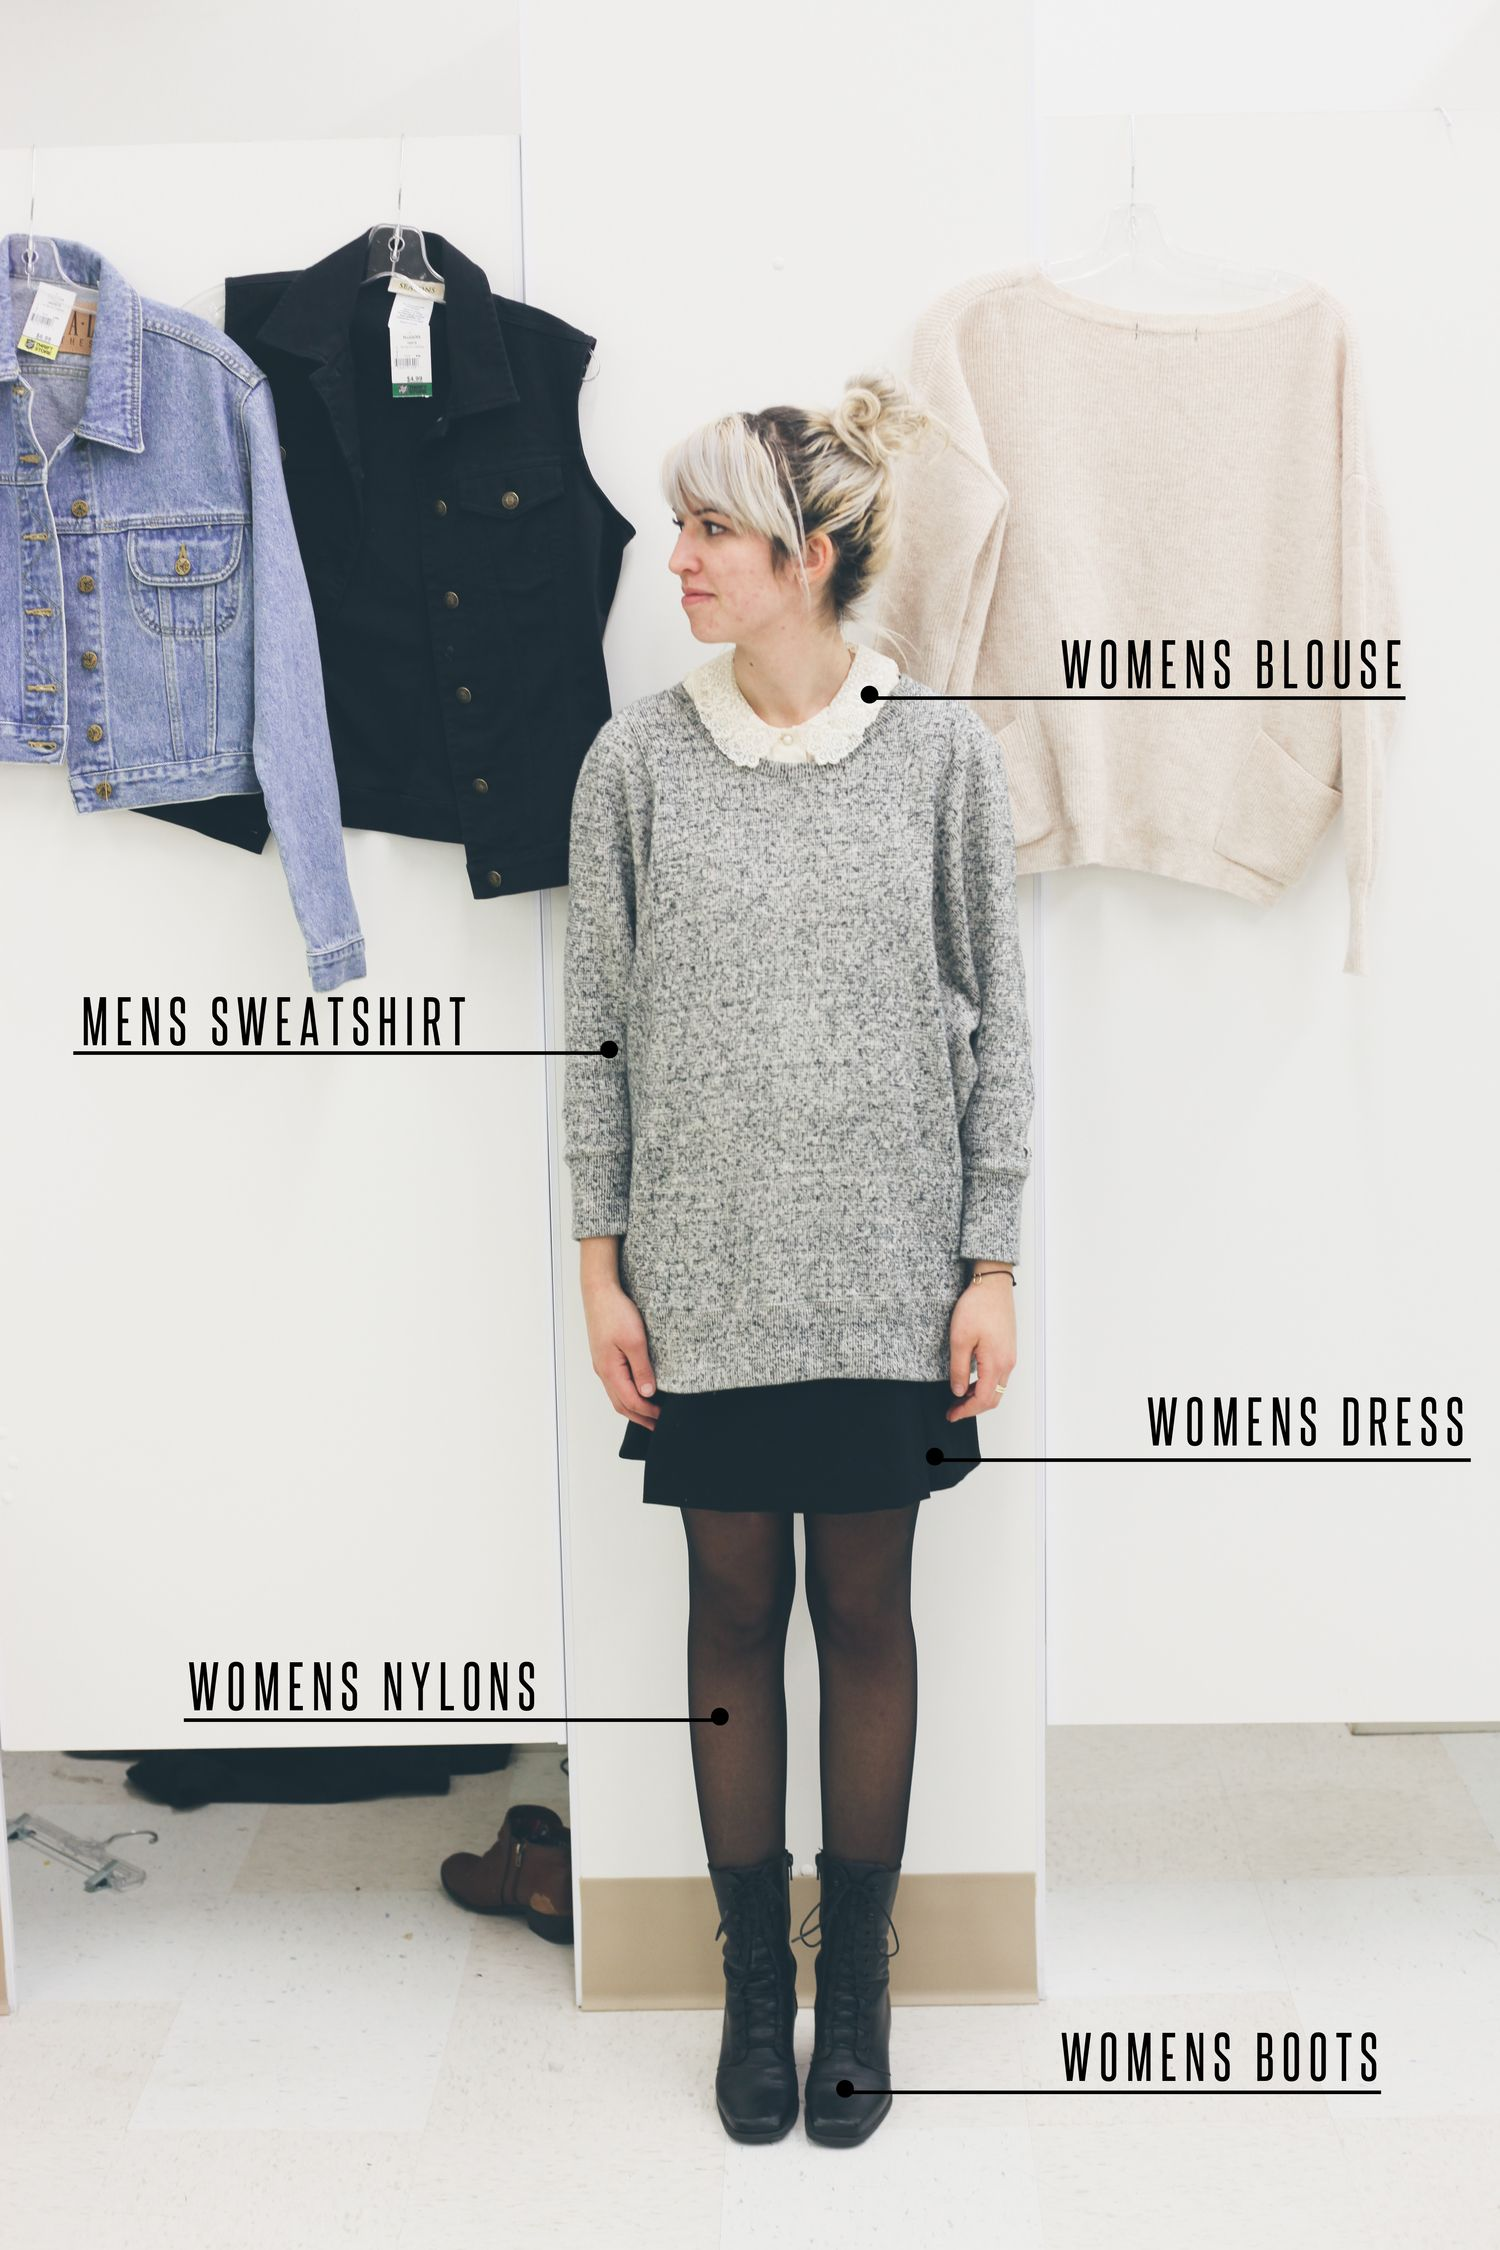 Thrifting Tips In 2018 Clothes Tings Pinterest Fashion